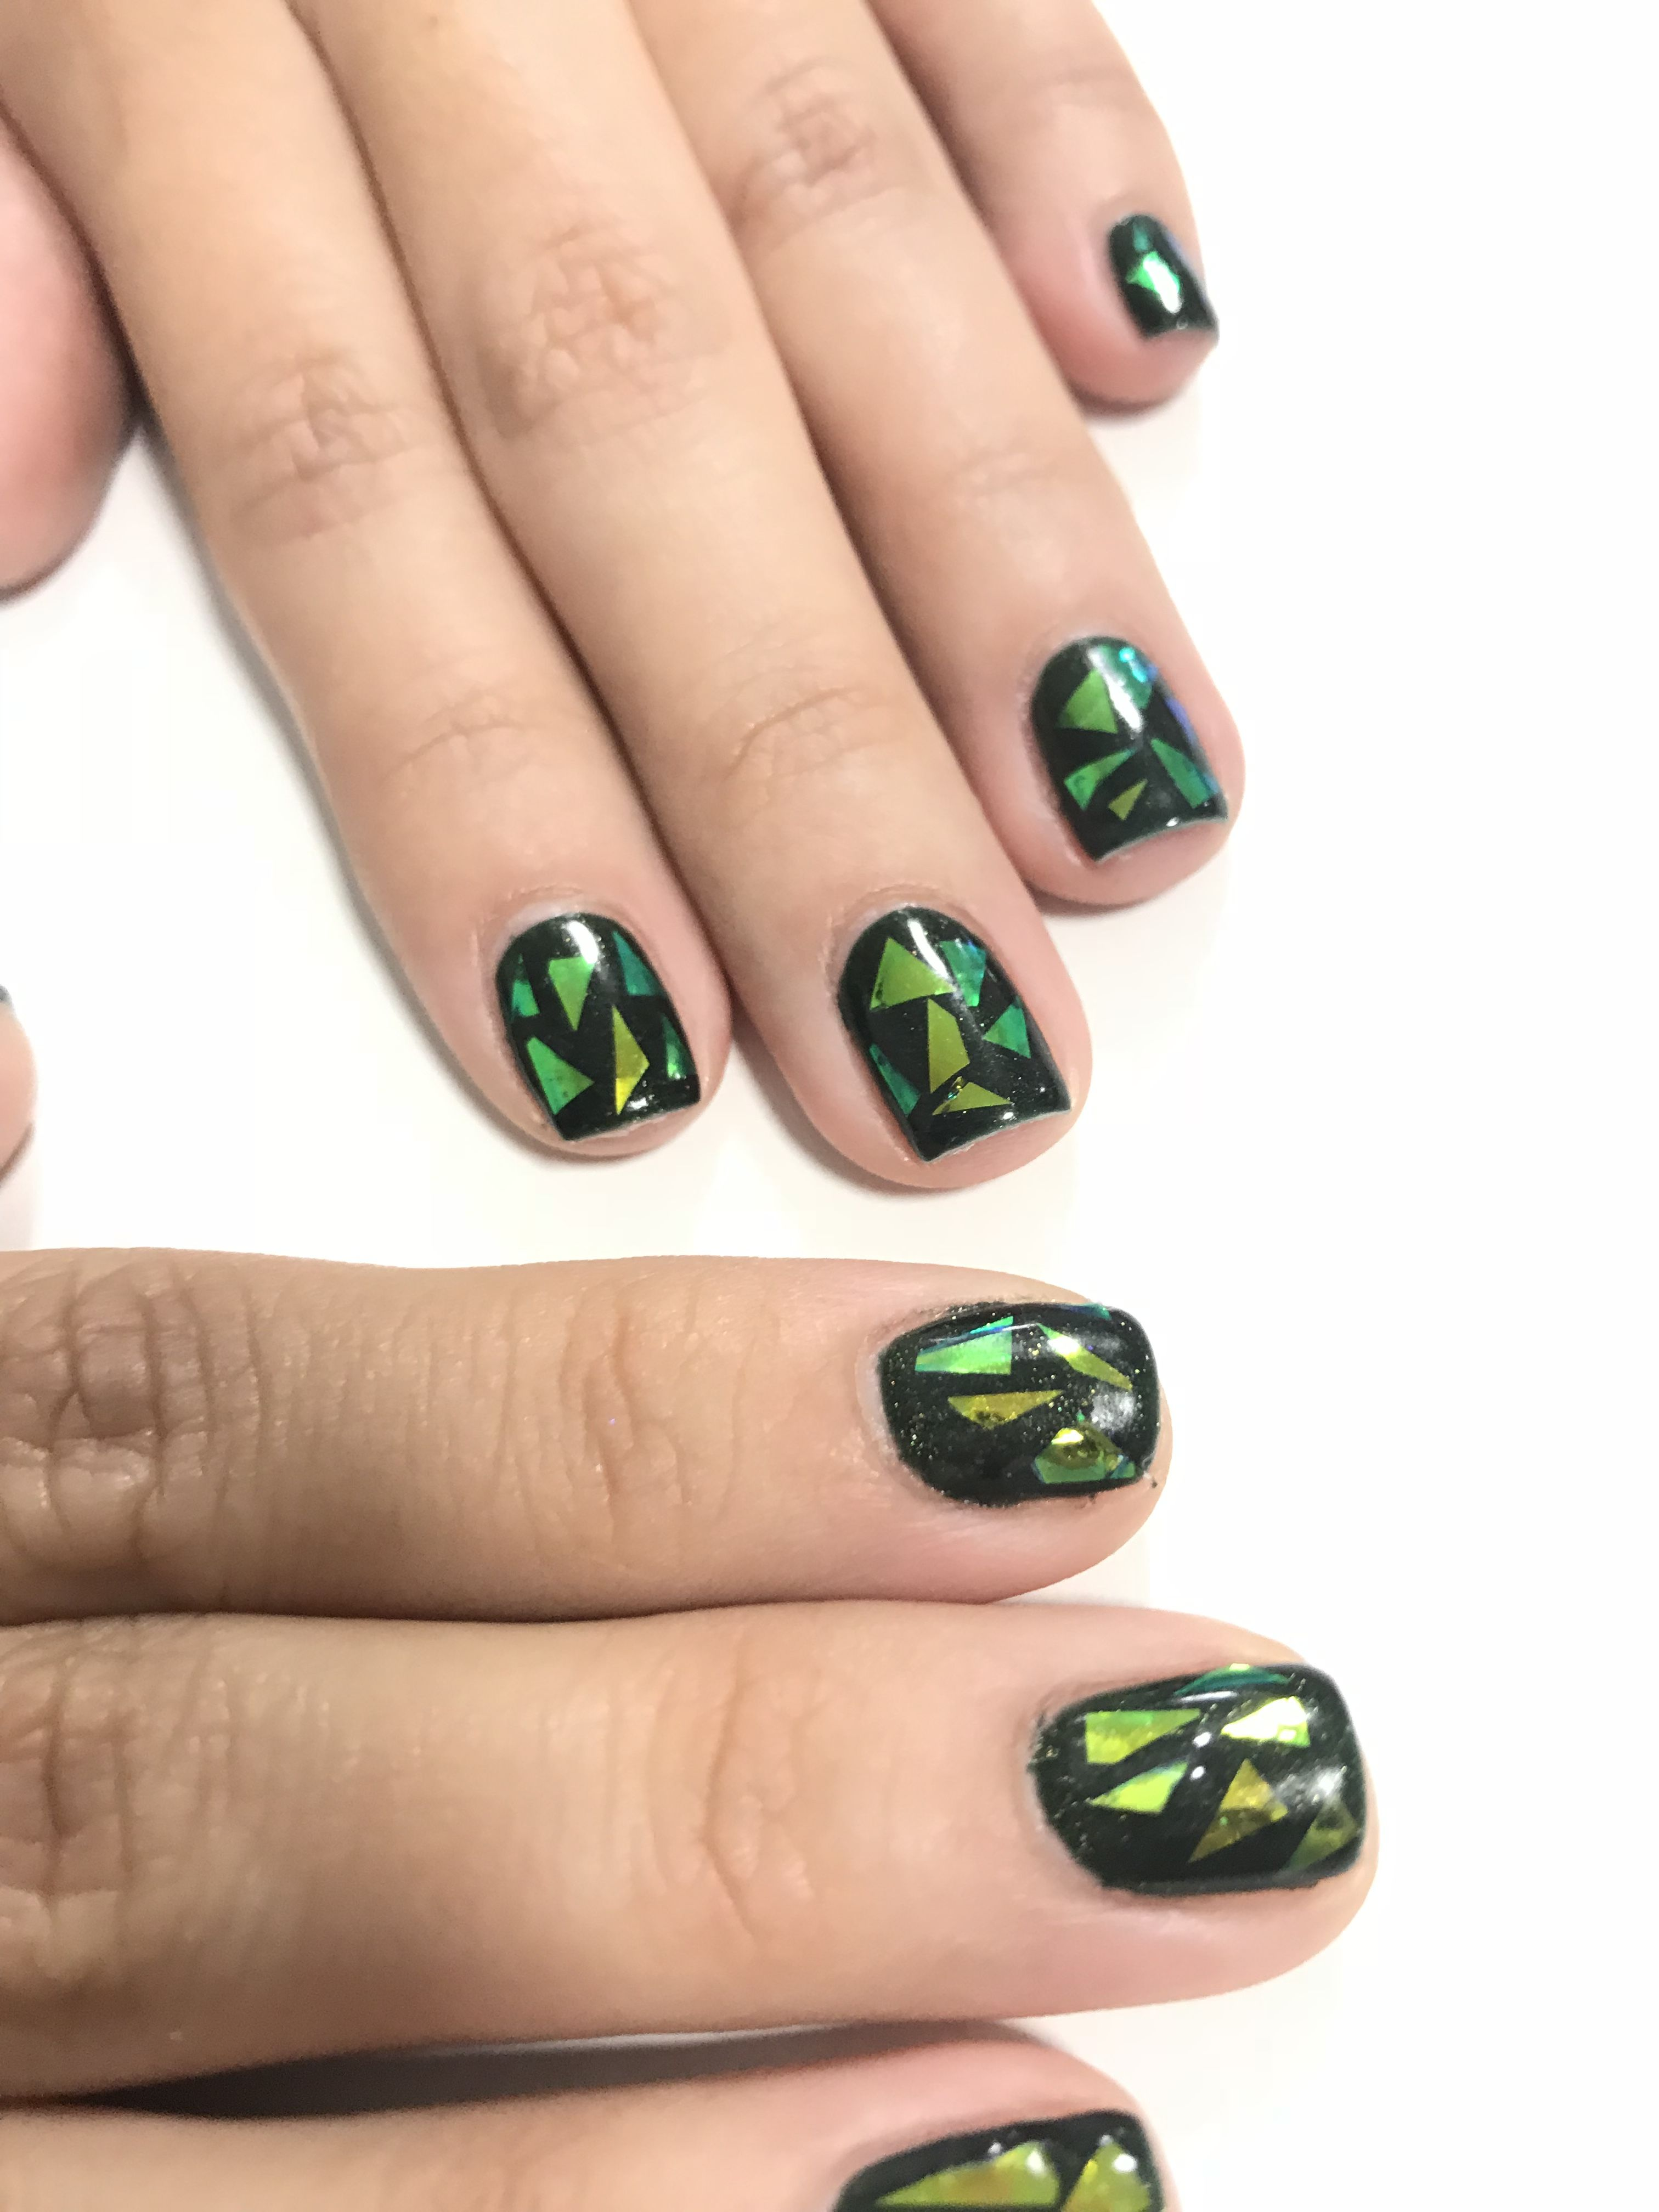 Shattered Glass Nail Art By Diane Diaz Cnd Shellac Manicure Nail